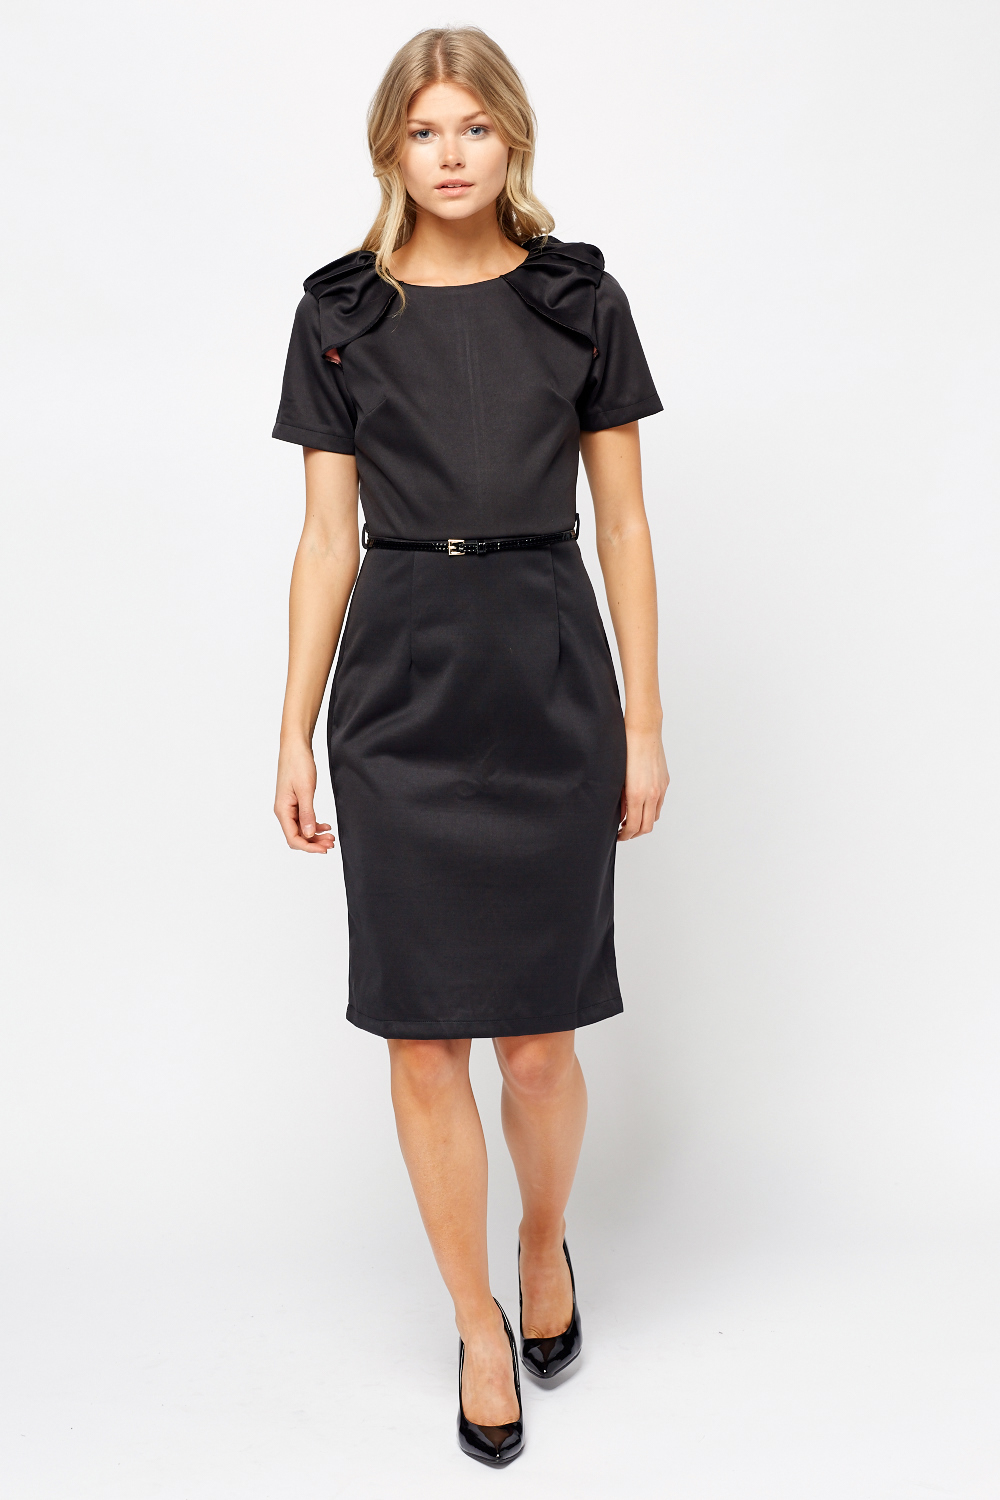 Ruched Sleeve Black Pencil Dress - Just £5 7270322fa